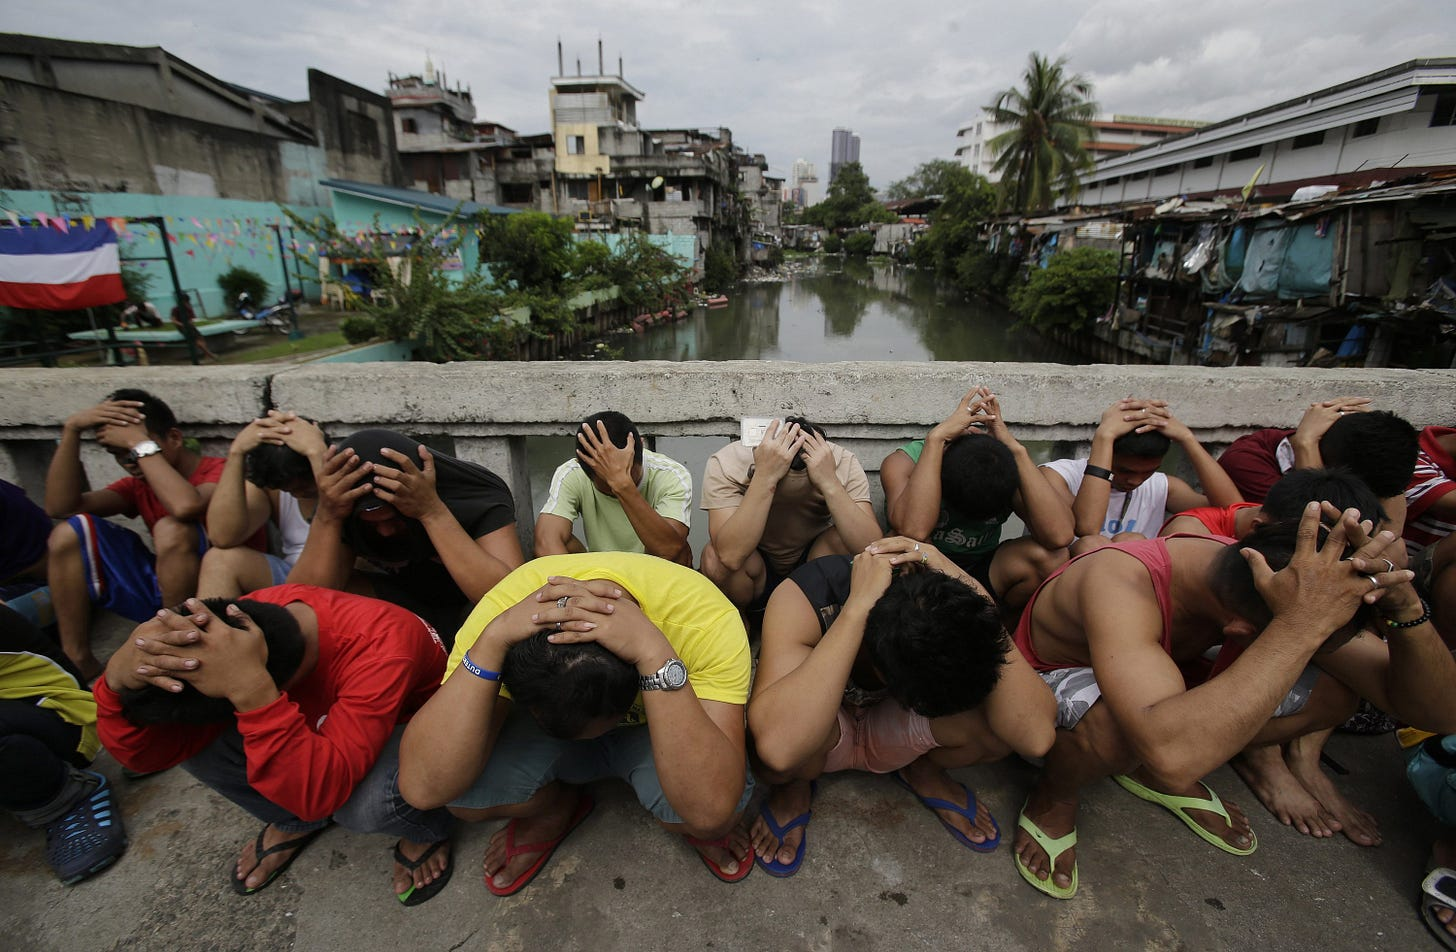 8,000 killed in Philippines' drug war since 2016 | Daily Sabah